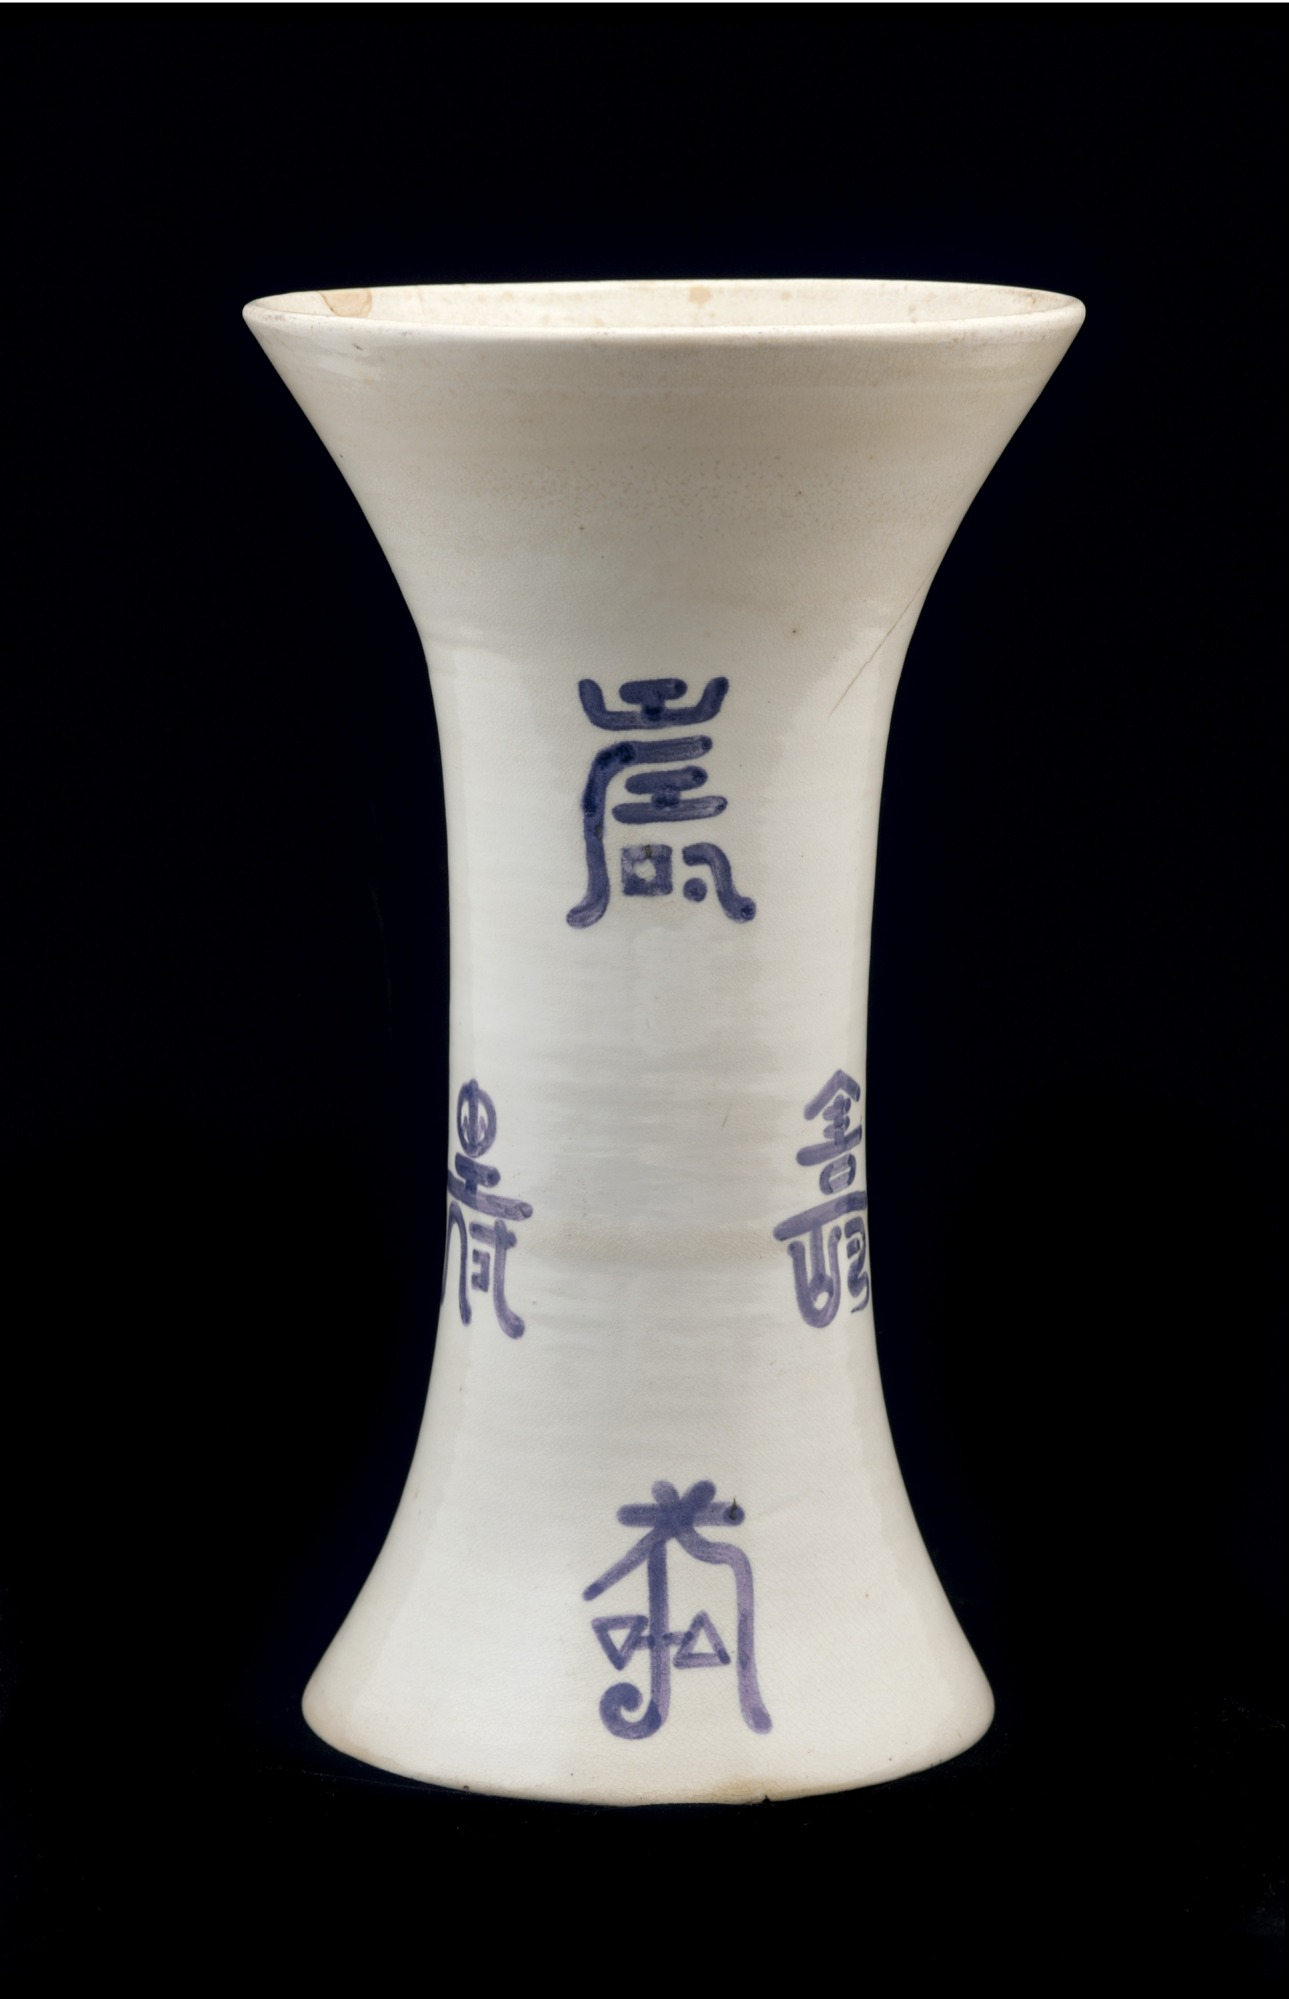 profile: Taizan ware vase with design of the character for longevity